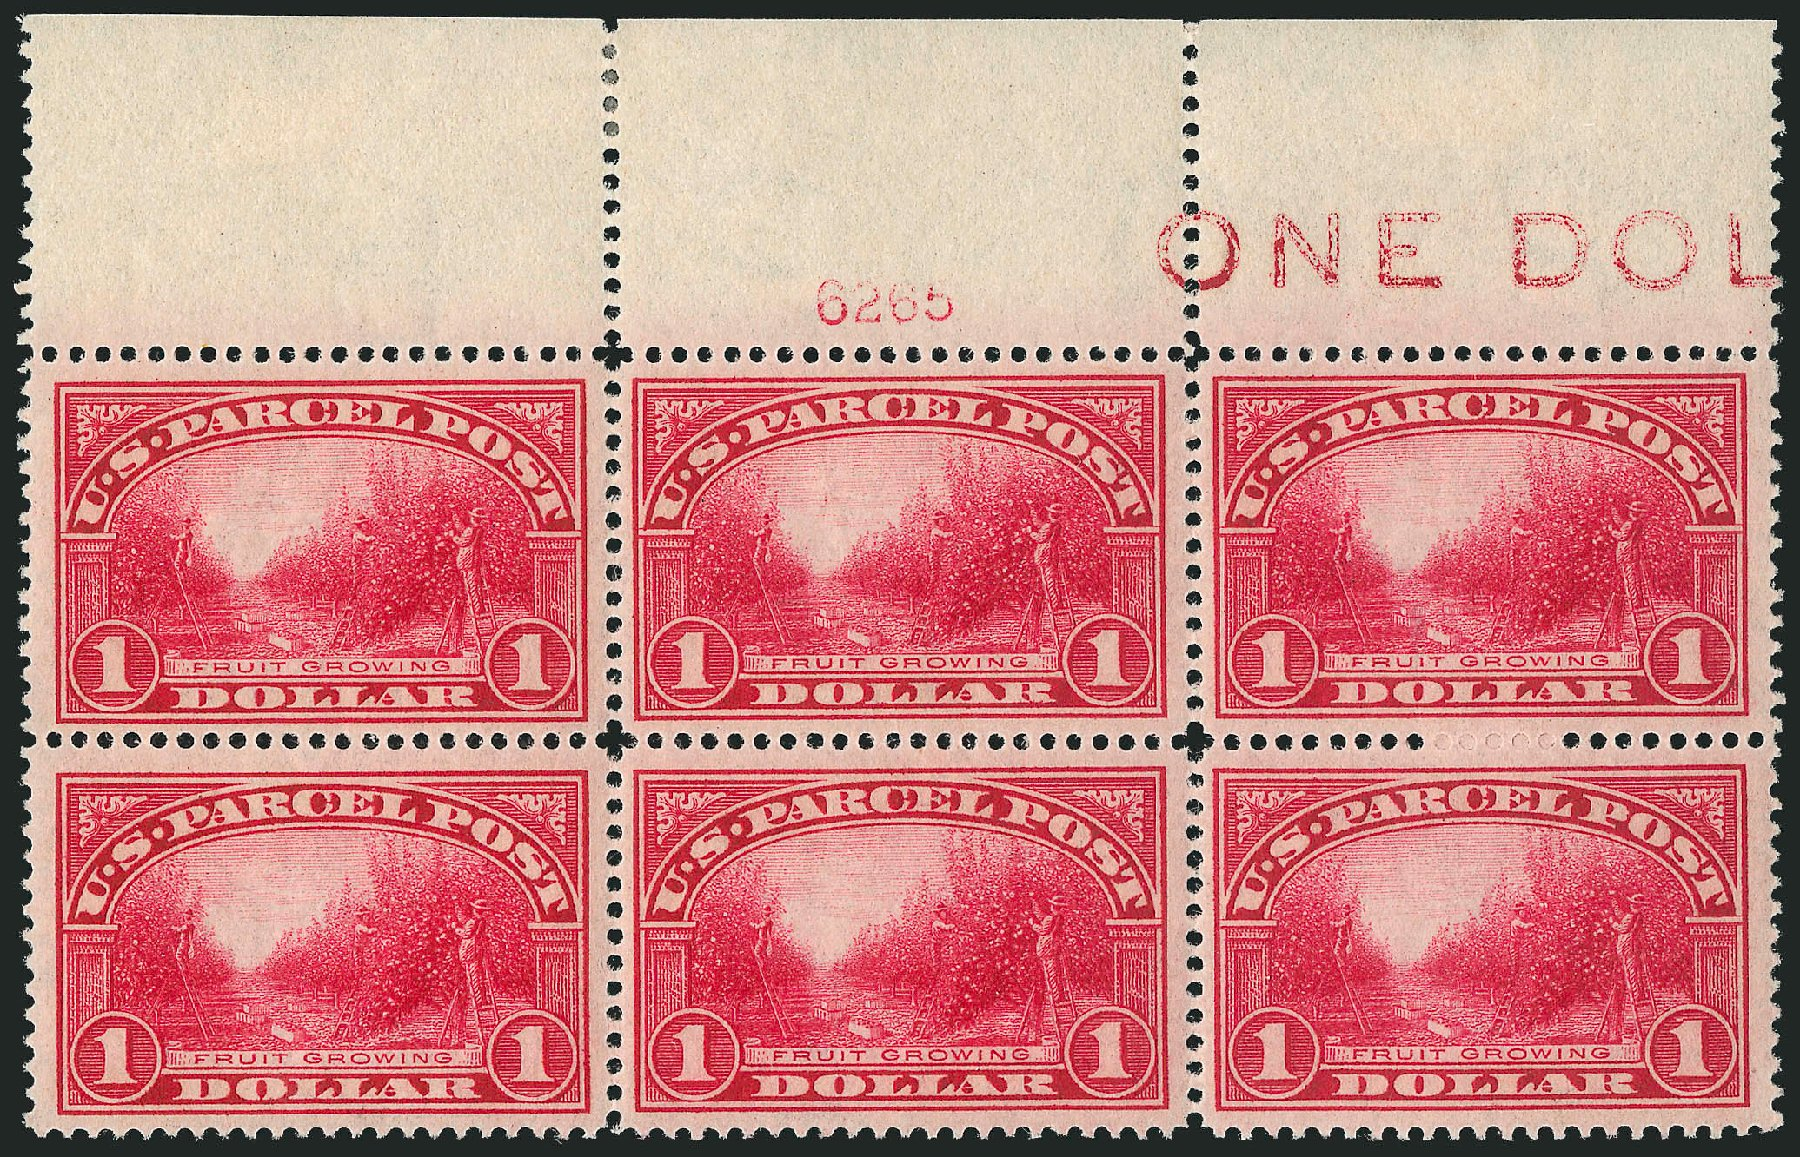 US Stamps Price Scott Catalogue # Q12: US$1.00 1913 Parcel Post. Robert Siegel Auction Galleries, Mar 2015, Sale 1094, Lot 296